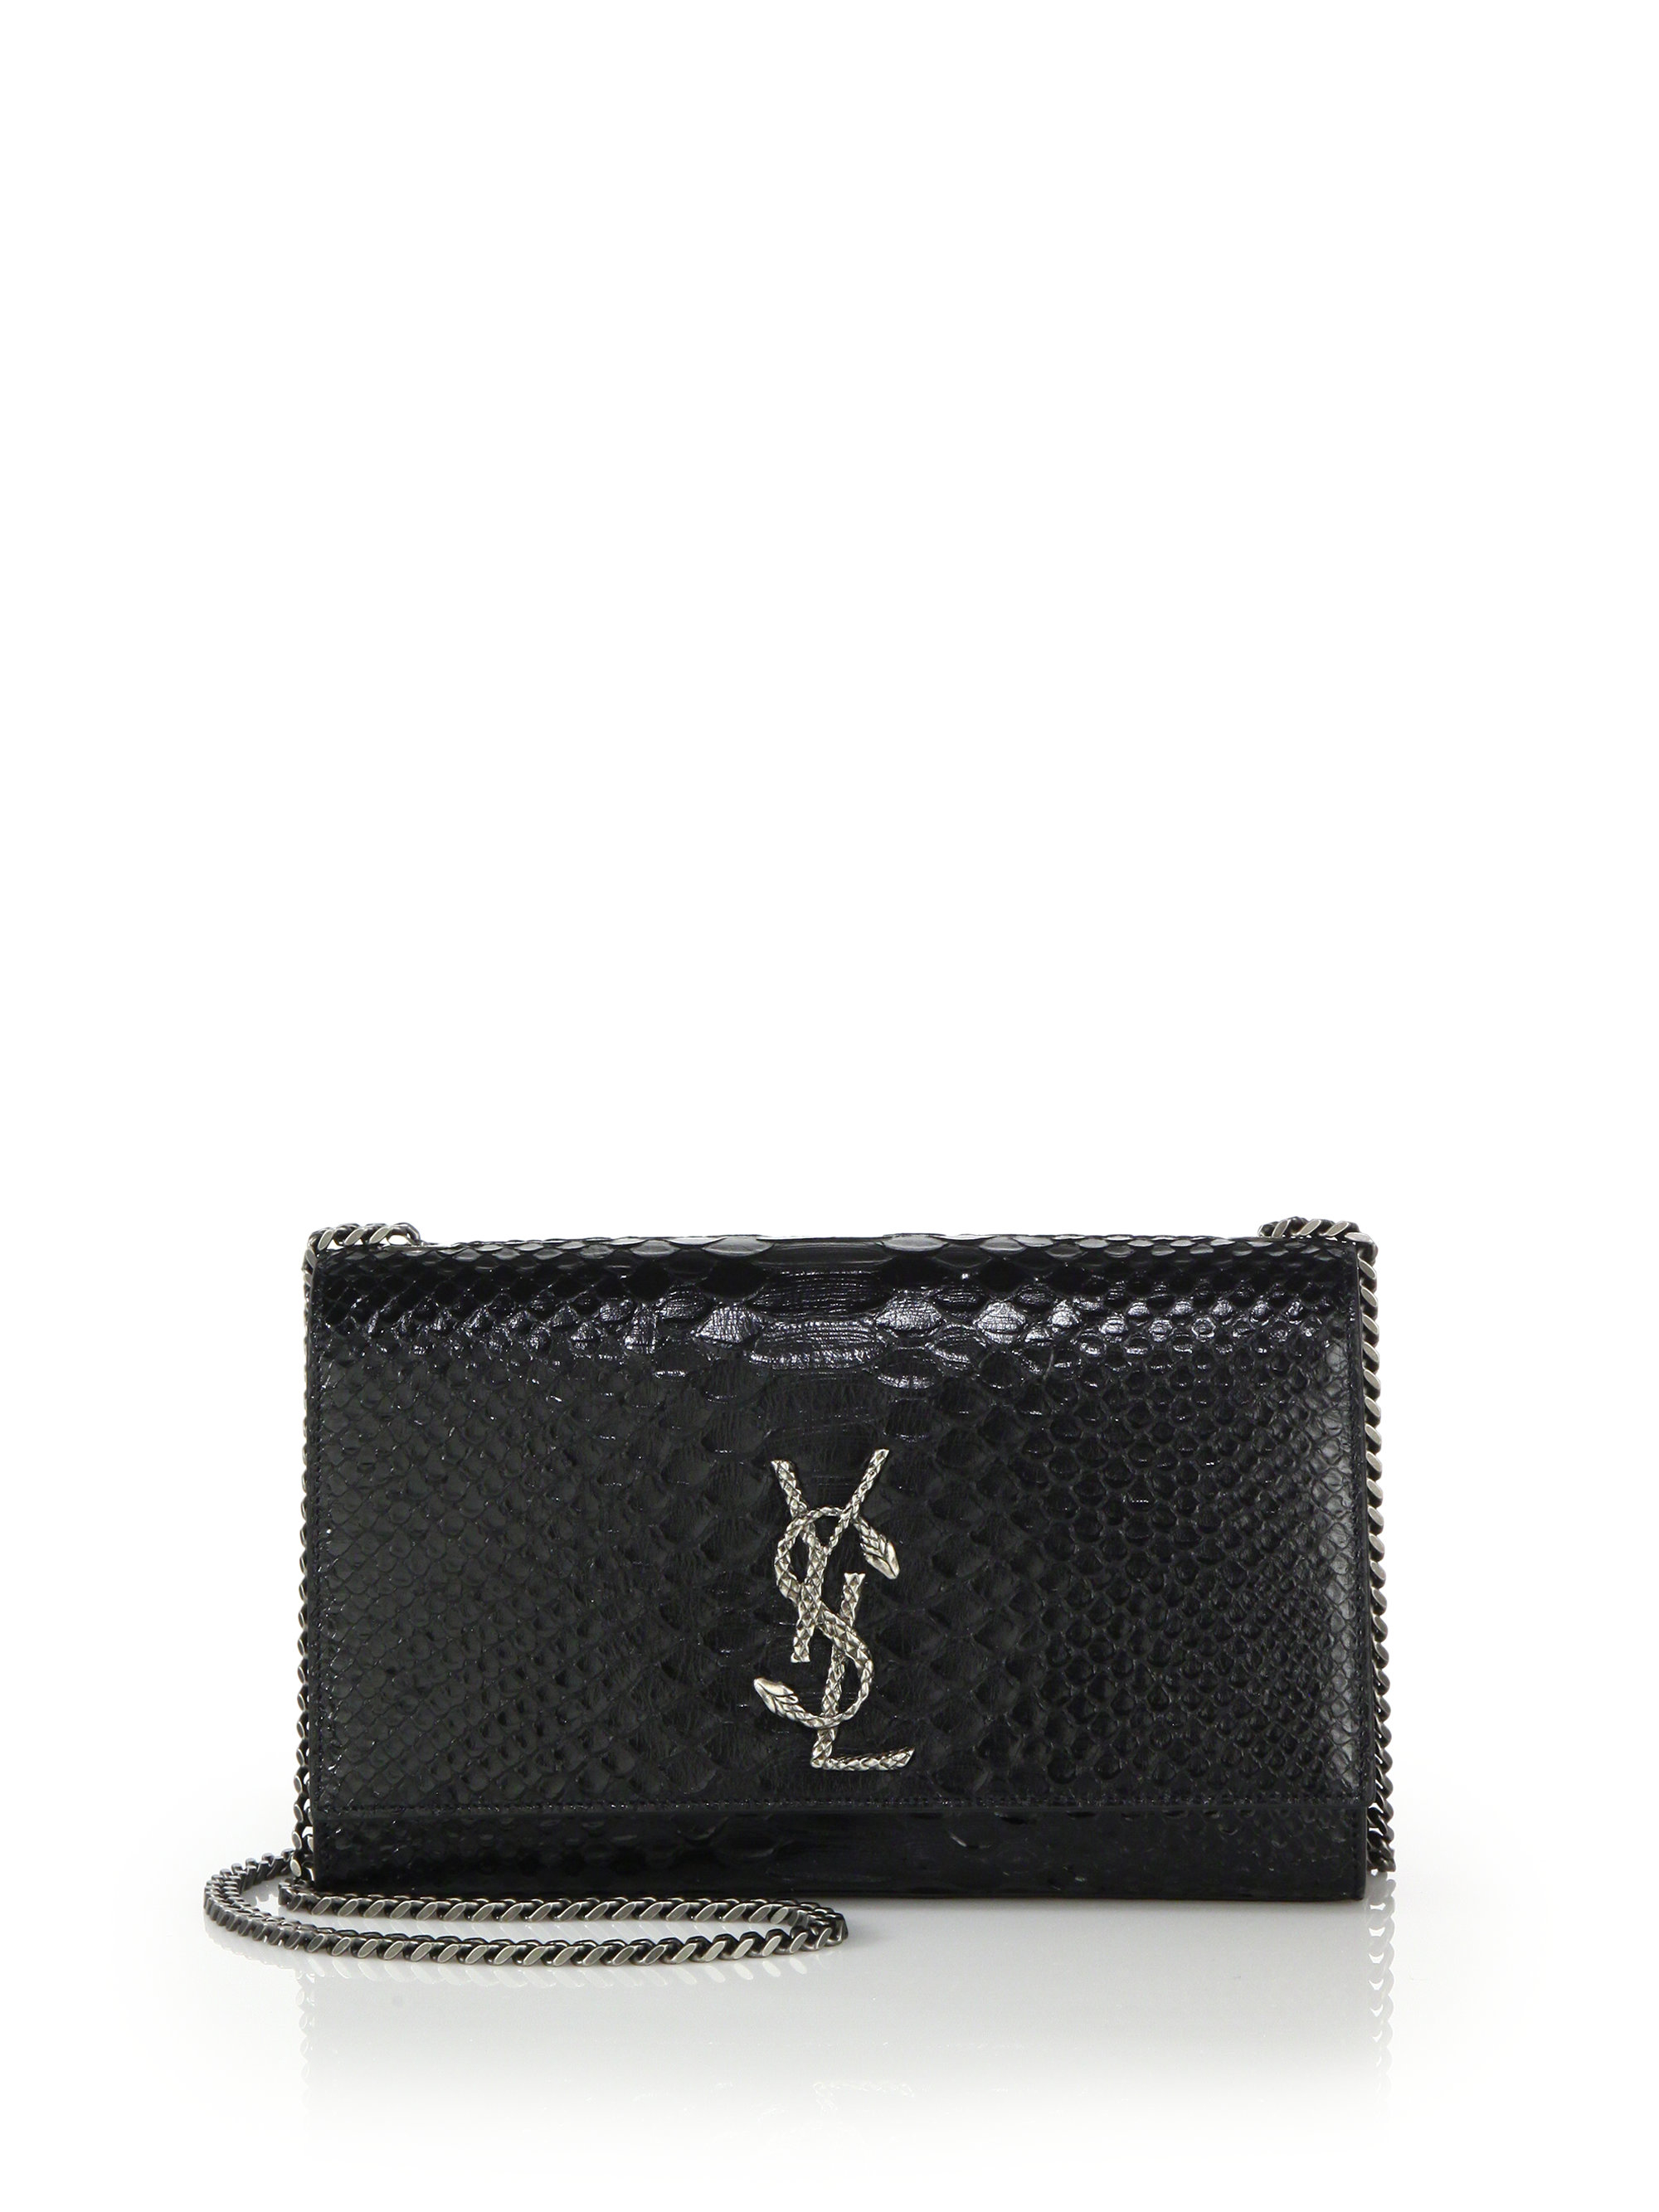 Classic Medium Kate Monogram Saint Laurent Satchel In